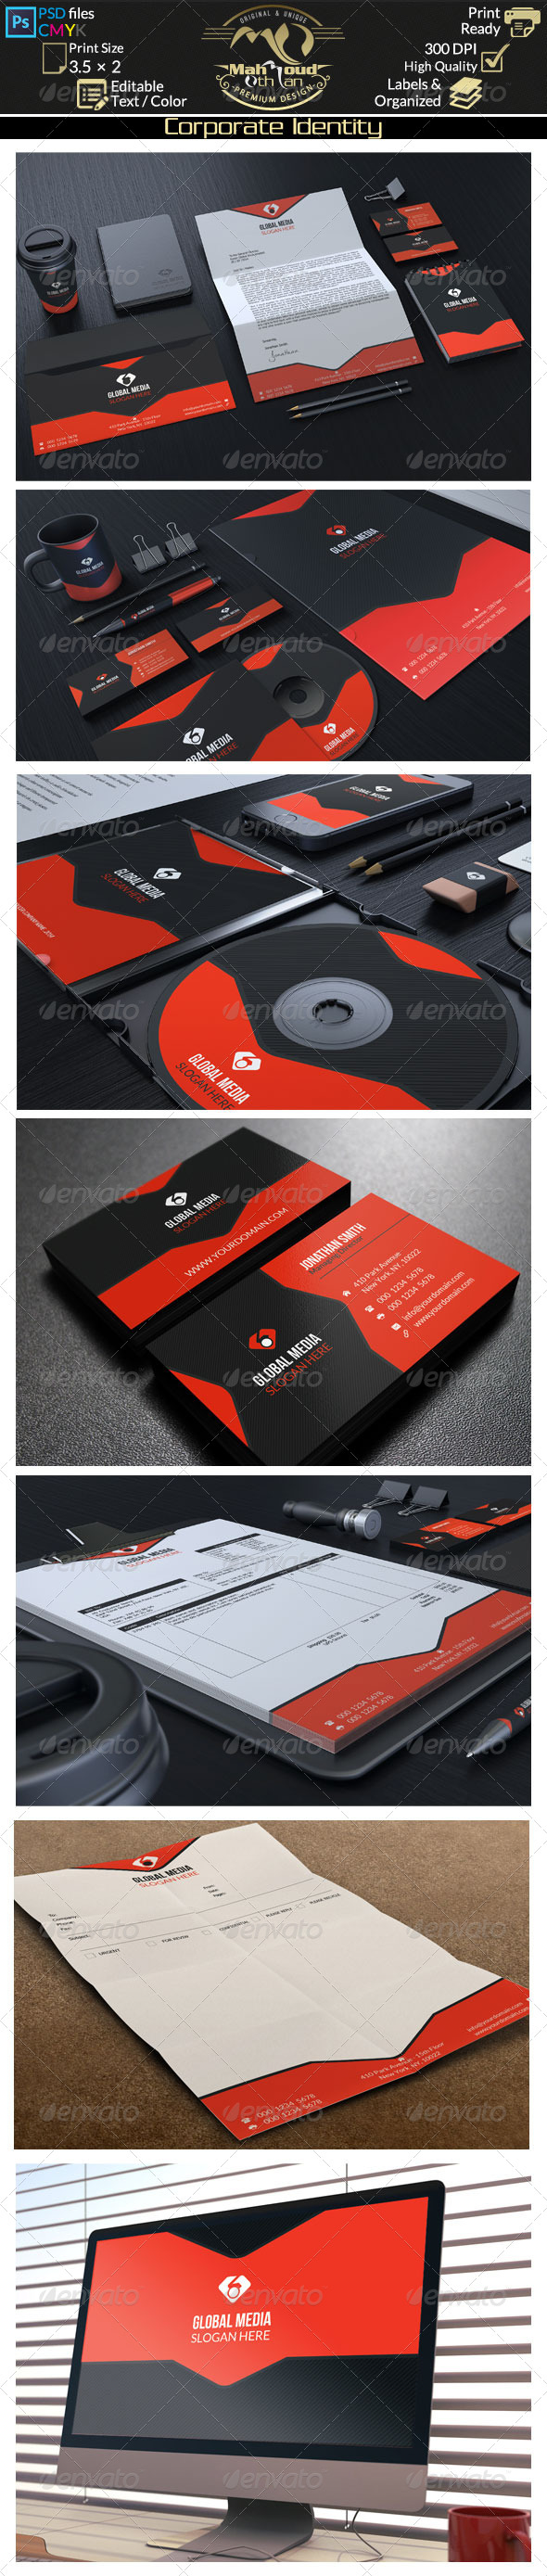 GraphicRiver Red Corporate Identity 8395243